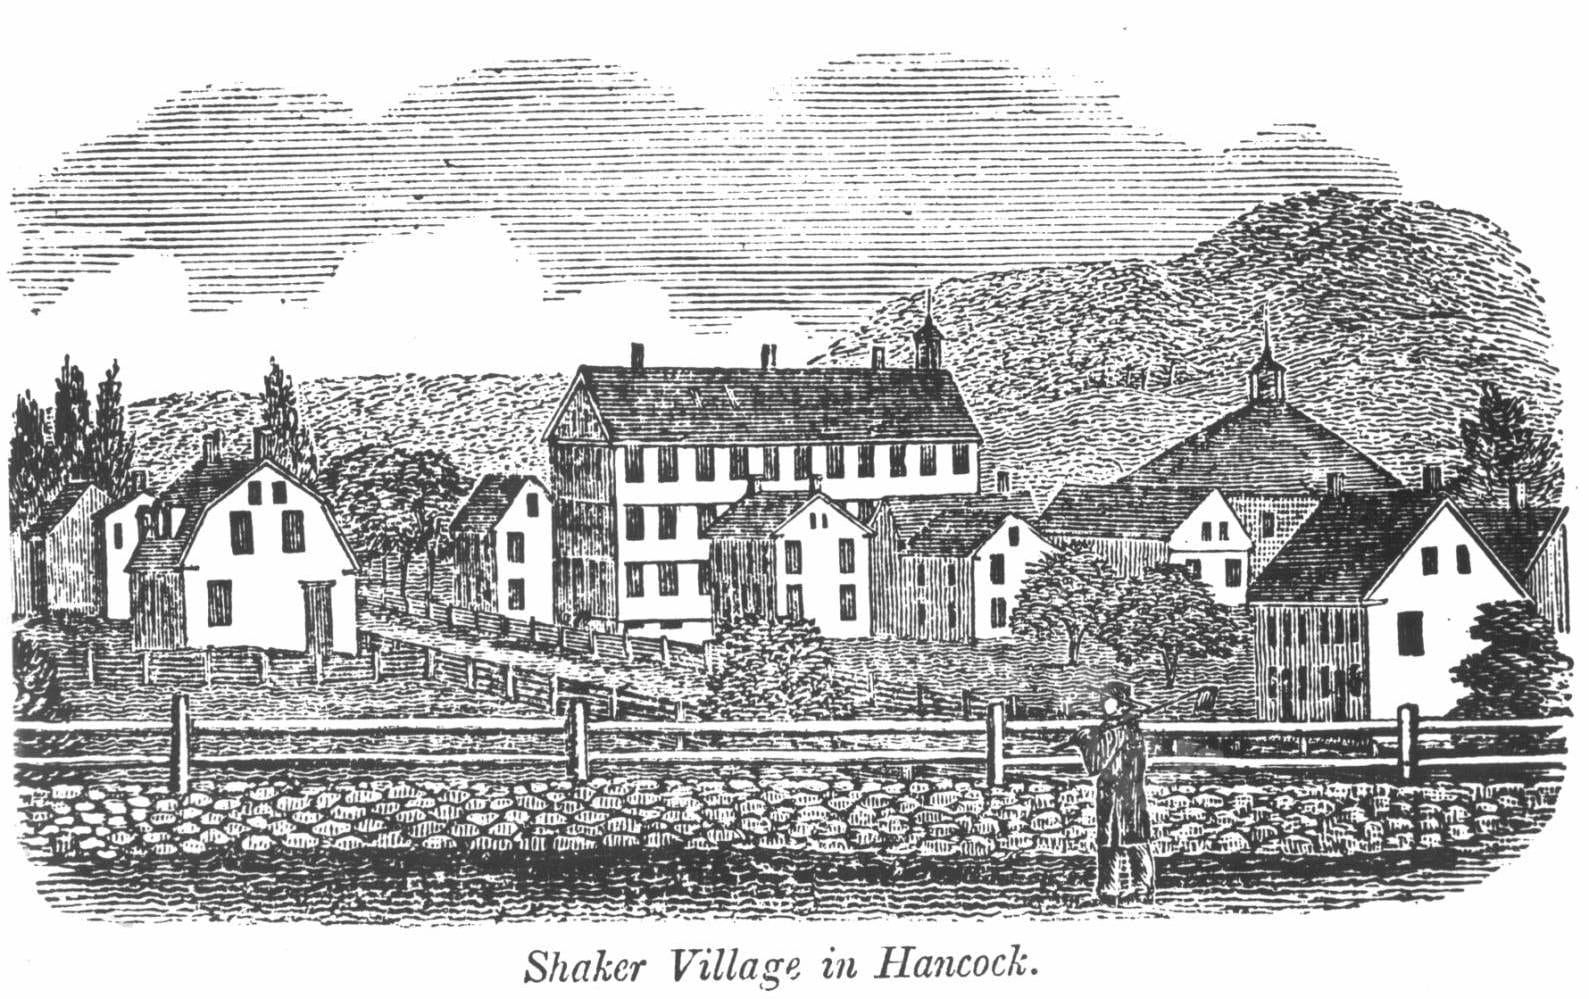 Black and white photograph of a woodcut produced of the Shaker Village at Hancock, Massachusetts. The image shows numerous buildings and trees, all of different size, behind a white picket fence which sits atop a short stone wall. A person wearing a long coat and a large brimmed hat  is standing in front of the fence looking at the village.